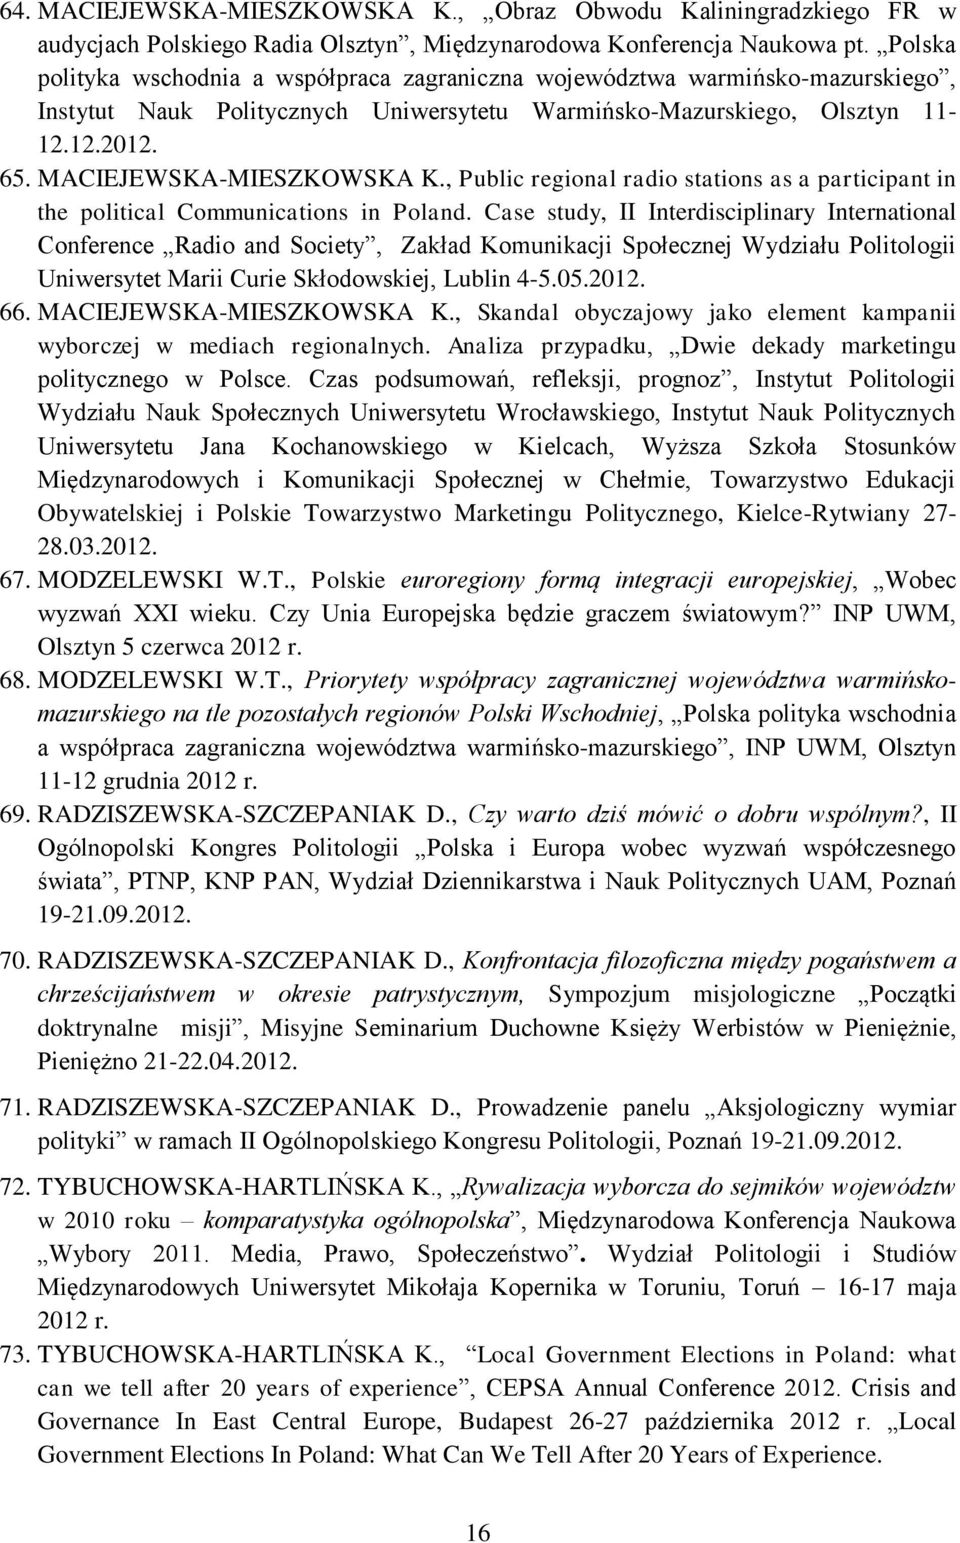 MACIEJEWSKA-MIESZKOWSKA K., Public regional radio stations as a participant in the political Communications in Poland.